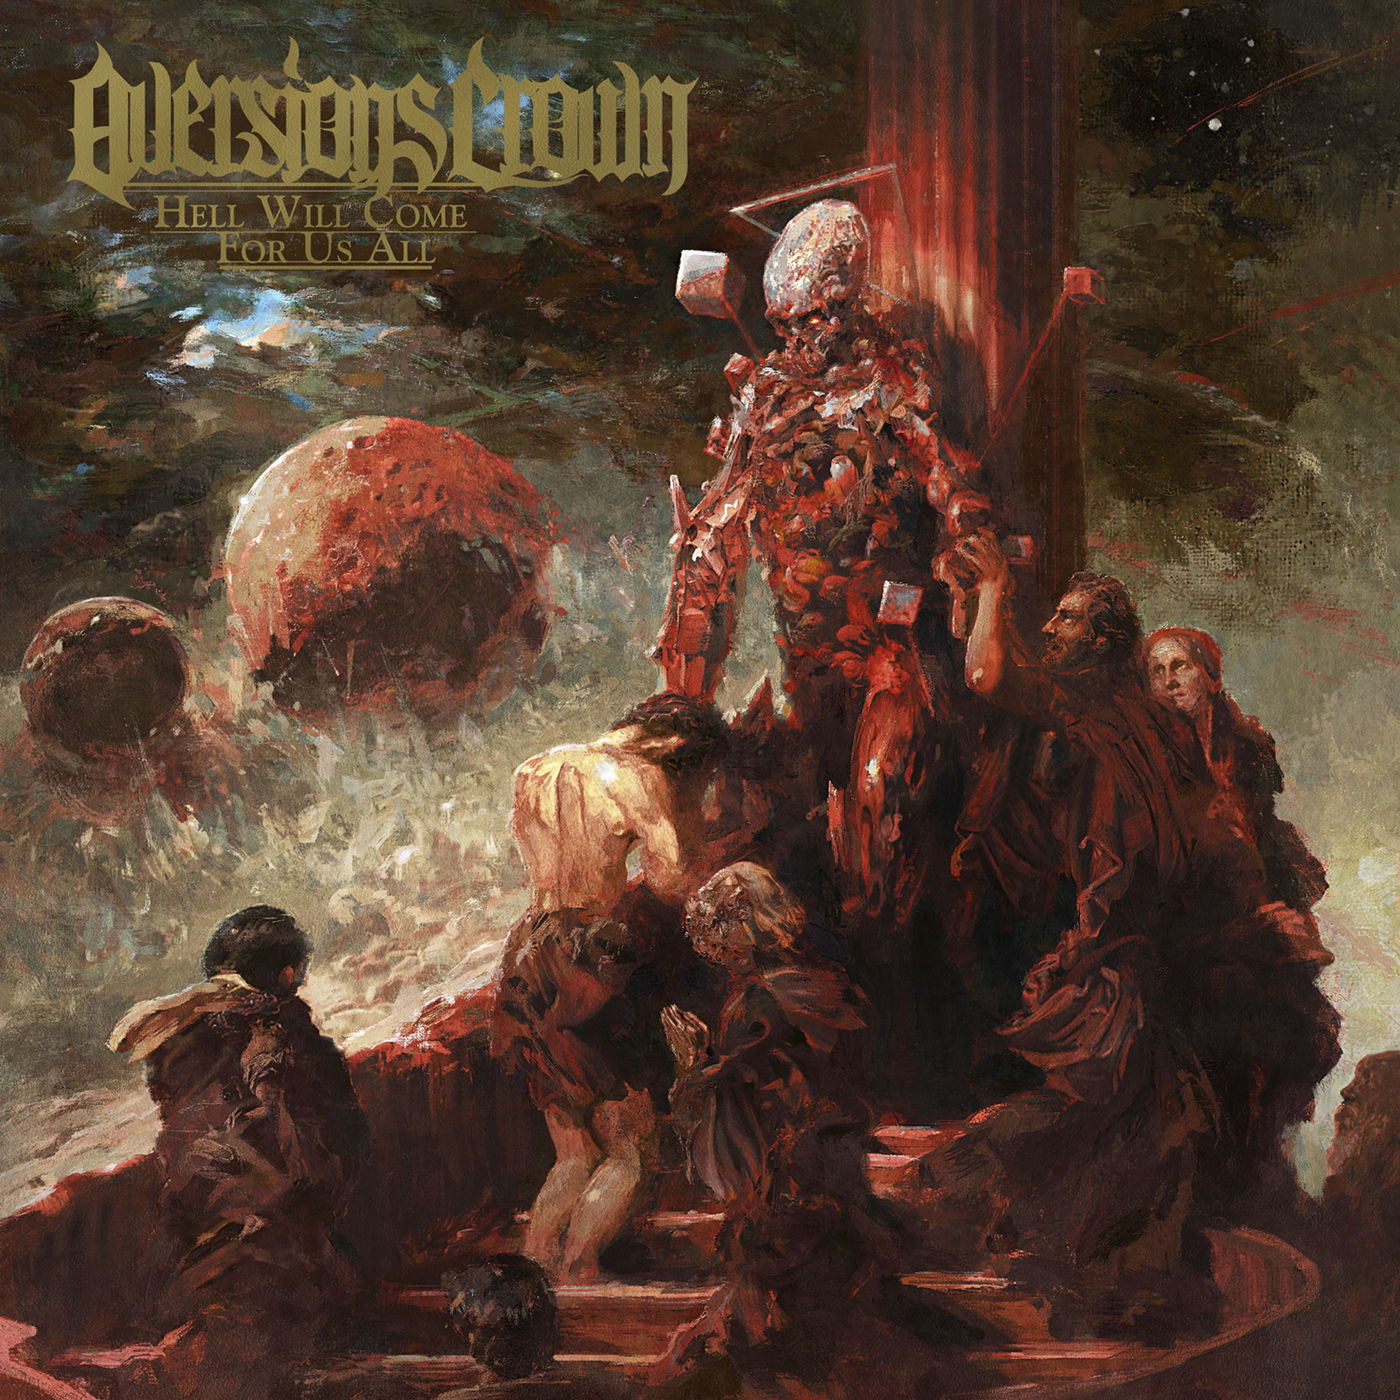 Aversions Crown - The Soil [single] (2020)